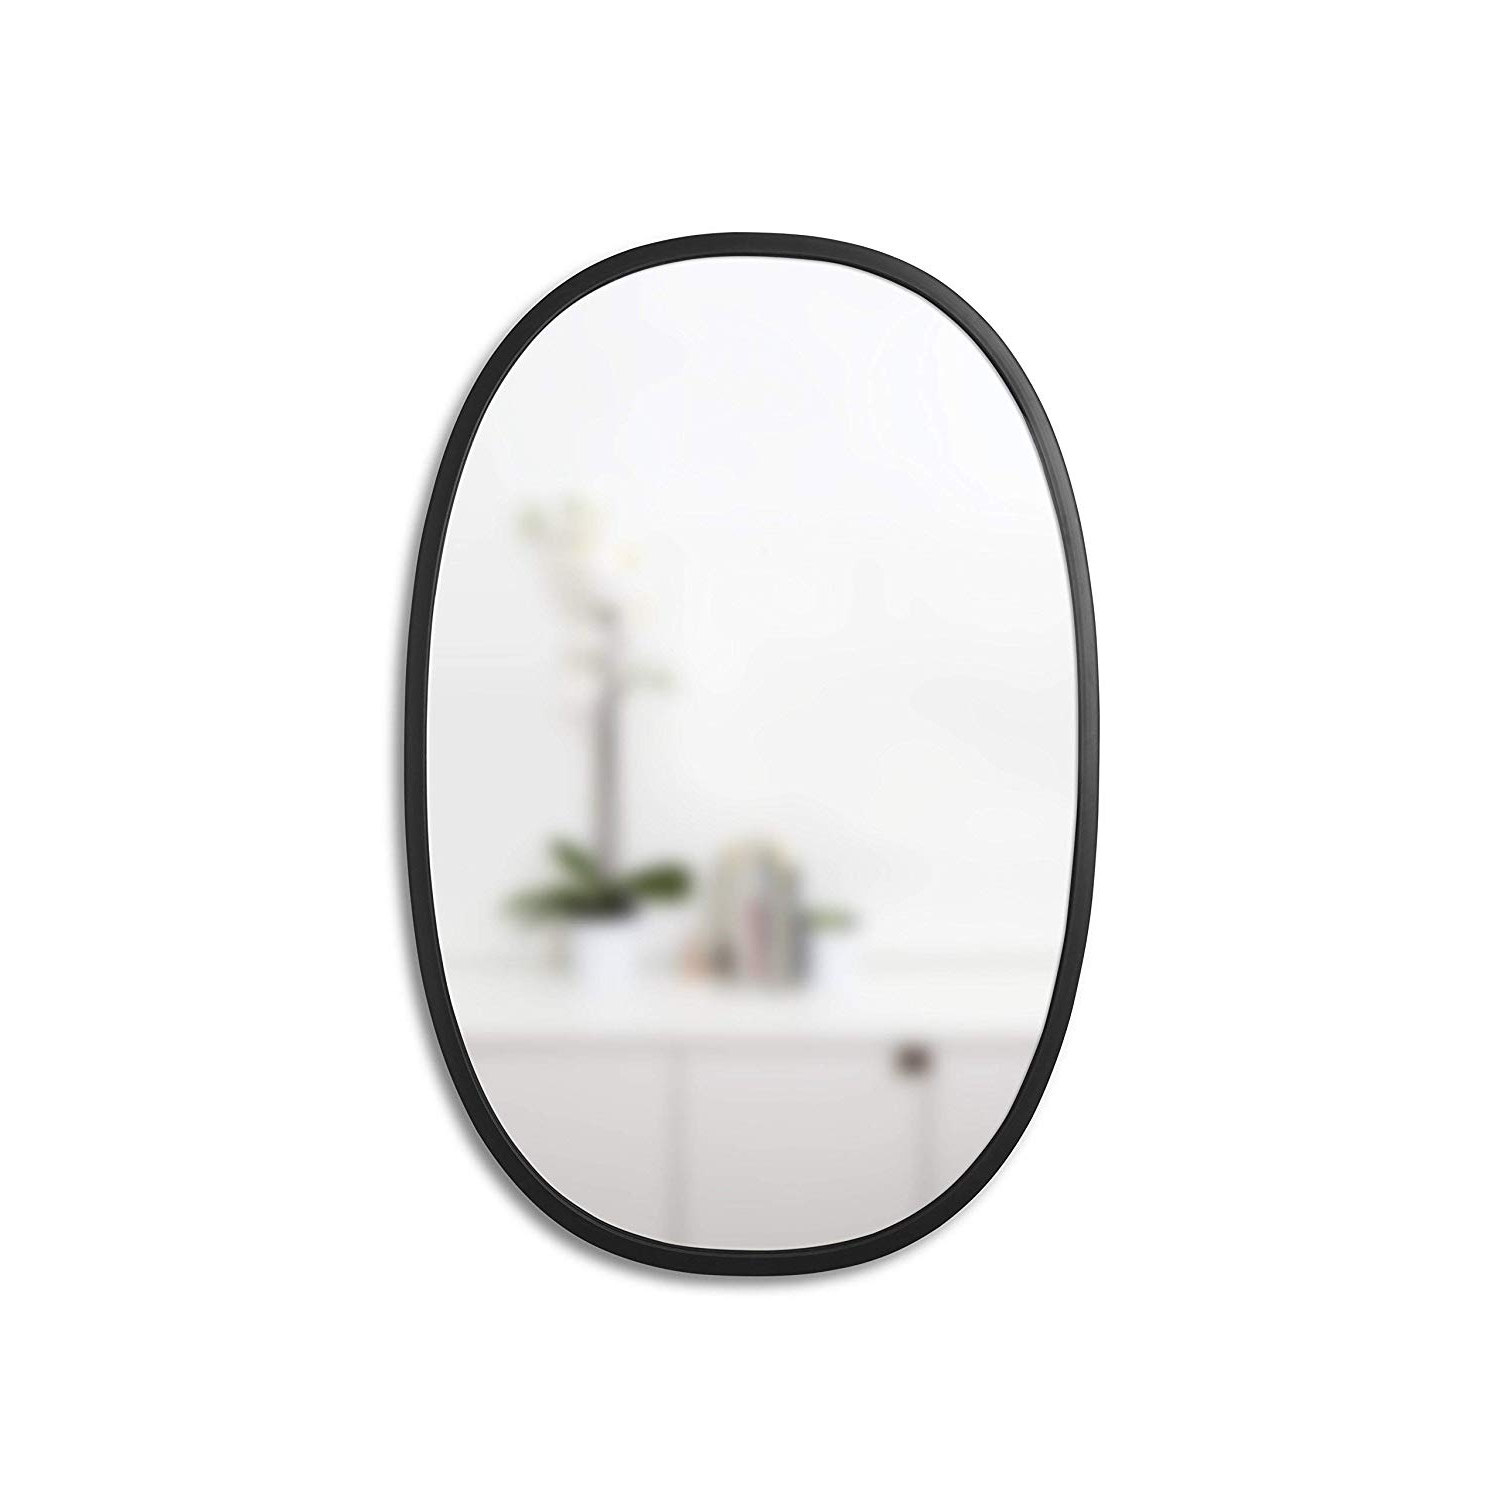 "2019 Oval Wall Mirrors With Regard To Umbra Hub 24 X 36"" Oval Wall Mirror With Rubber Frame, Modern Room Decor For Entryways, Washrooms, Living Rooms And More, Black (View 10 of 20)"